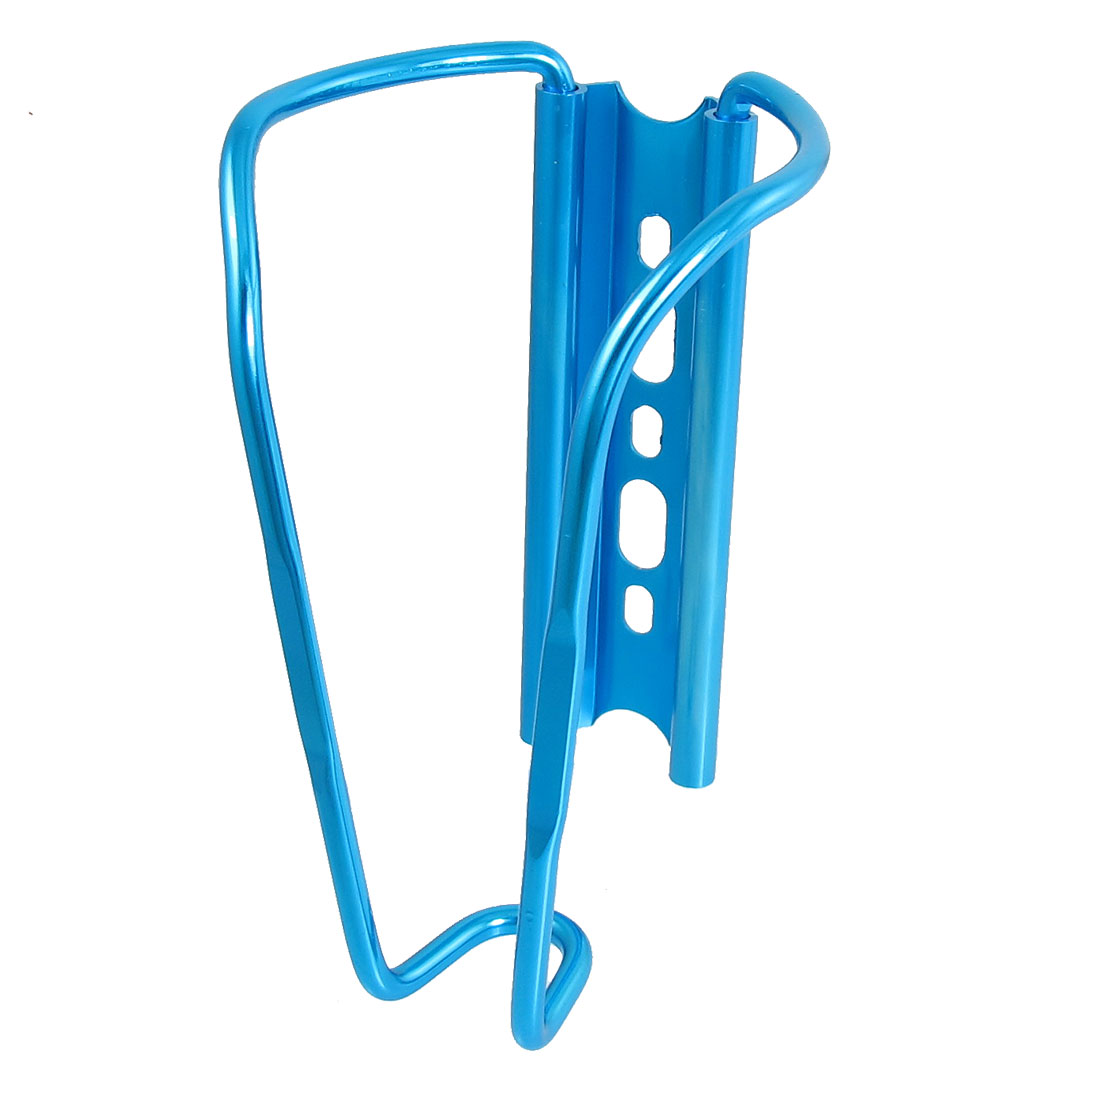 Sky Blue Aluminum Alloy Drink Water Bottle Holder Bracket for Bike Bicycle